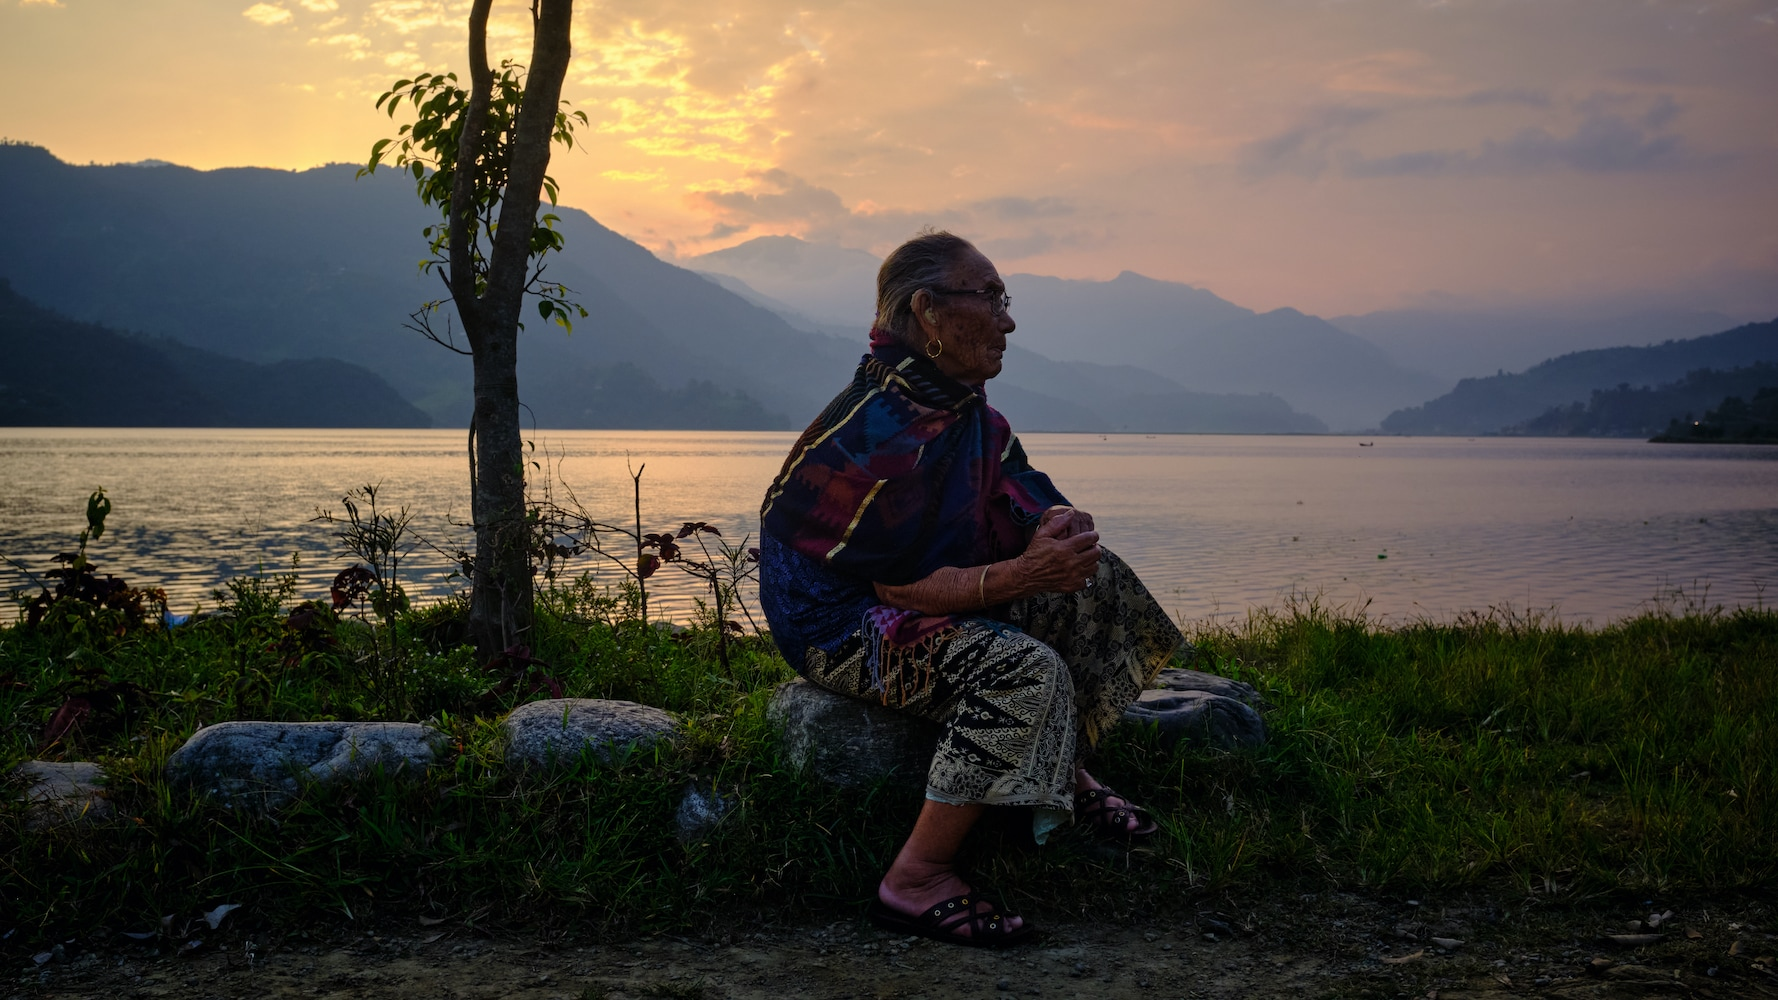 An elderly woman sitting by the Pokhara lakeside during sunset